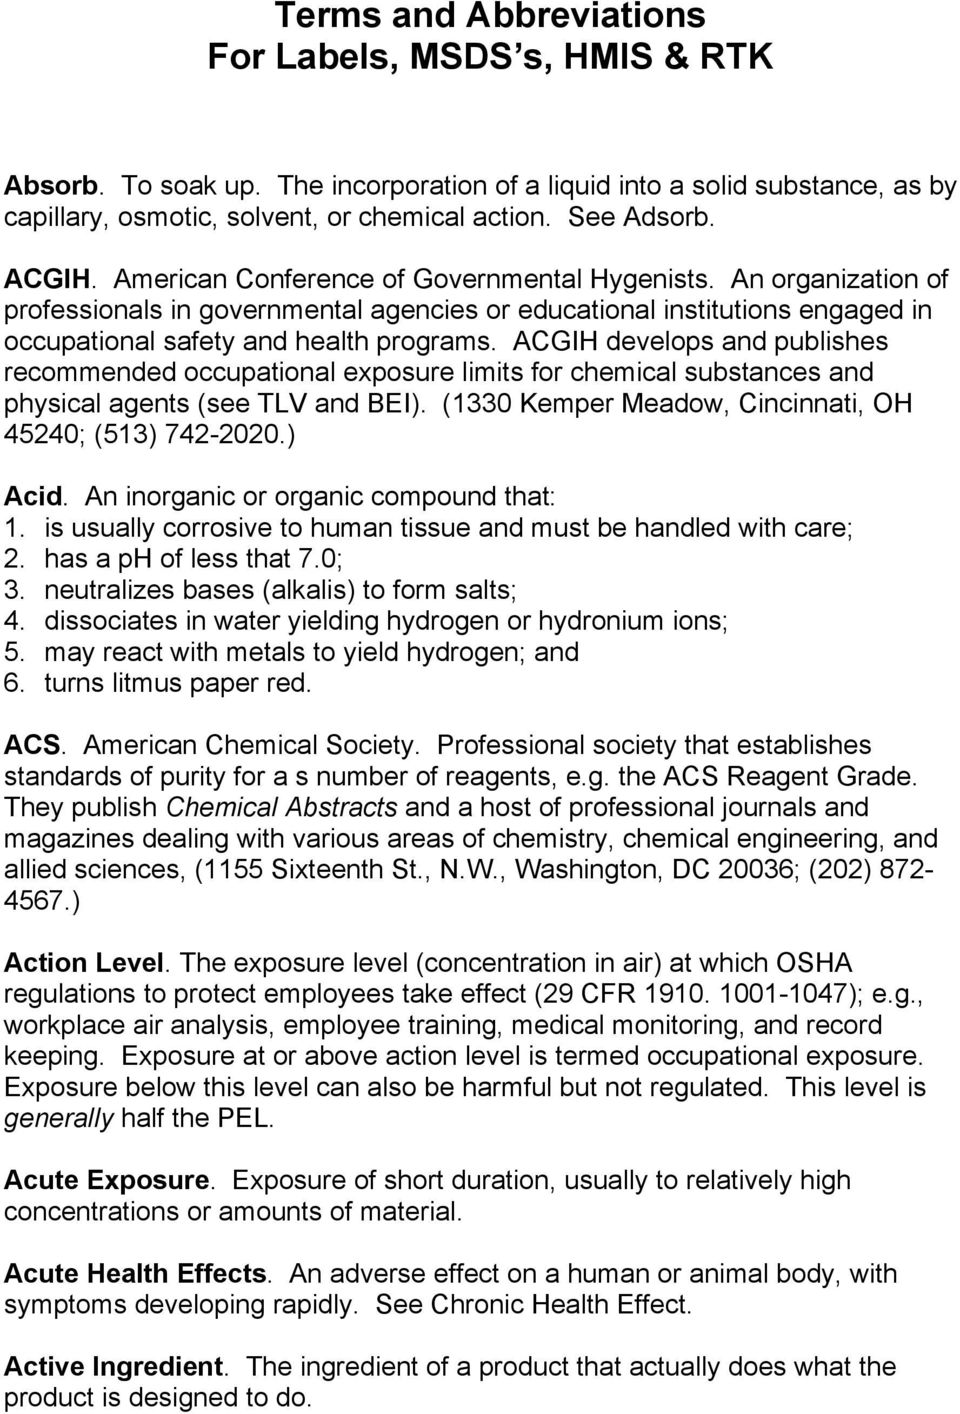 ACGIH develops and publishes recommended occupational exposure limits for chemical substances and physical agents (see TLV and BEI). (1330 Kemper Meadow, Cincinnati, OH 45240; (513) 742-2020.) Acid.